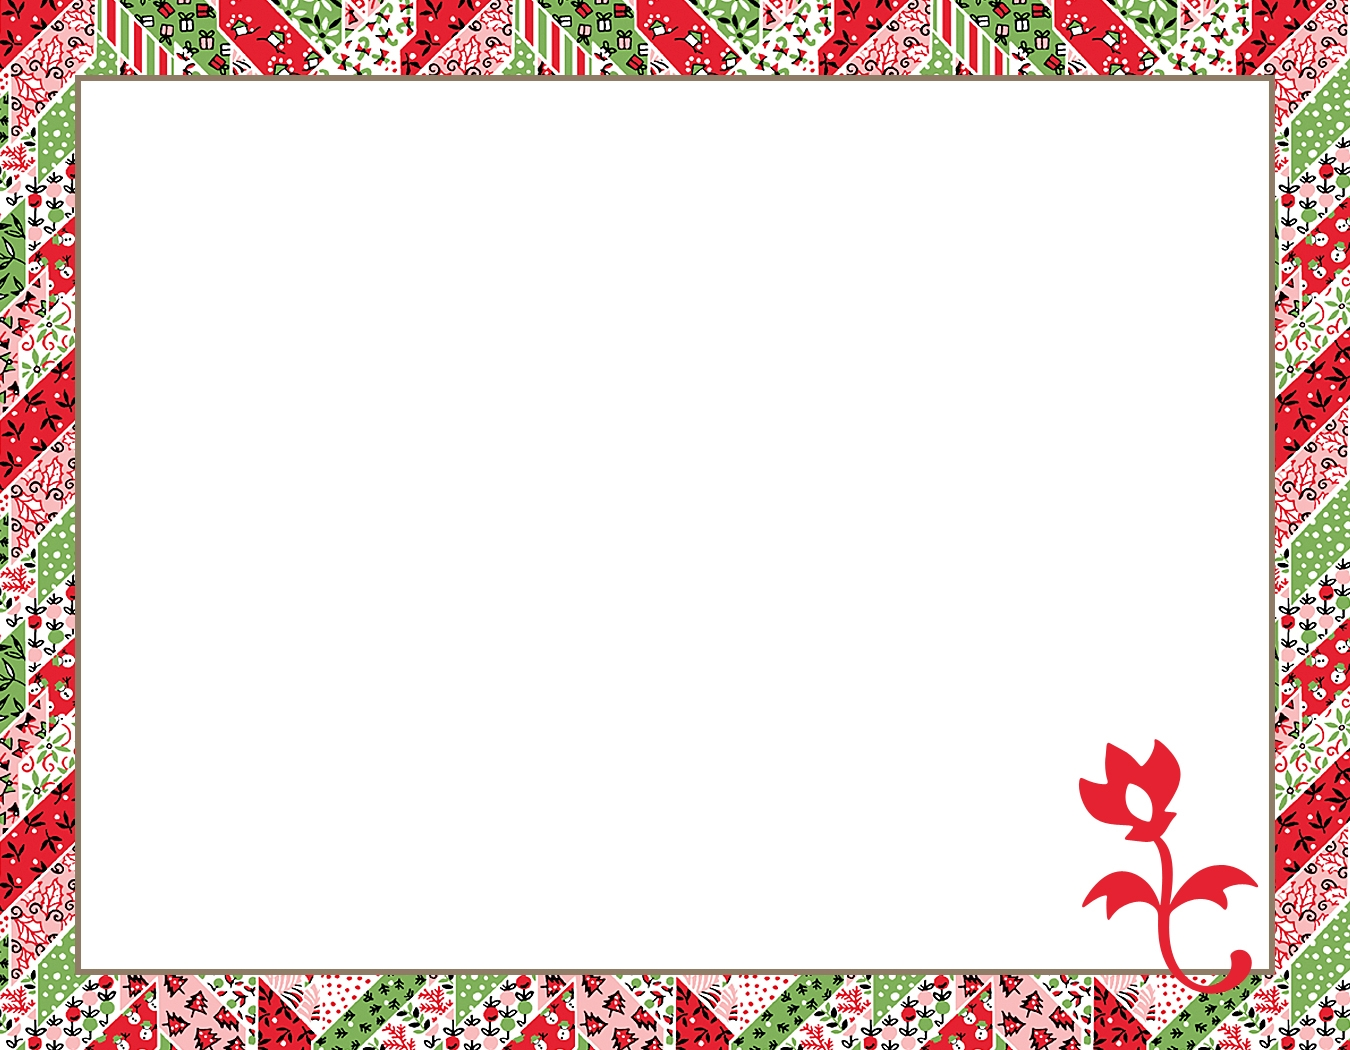 Free Microsoft Cliparts Quilt, Download Free Clip Art, Free.